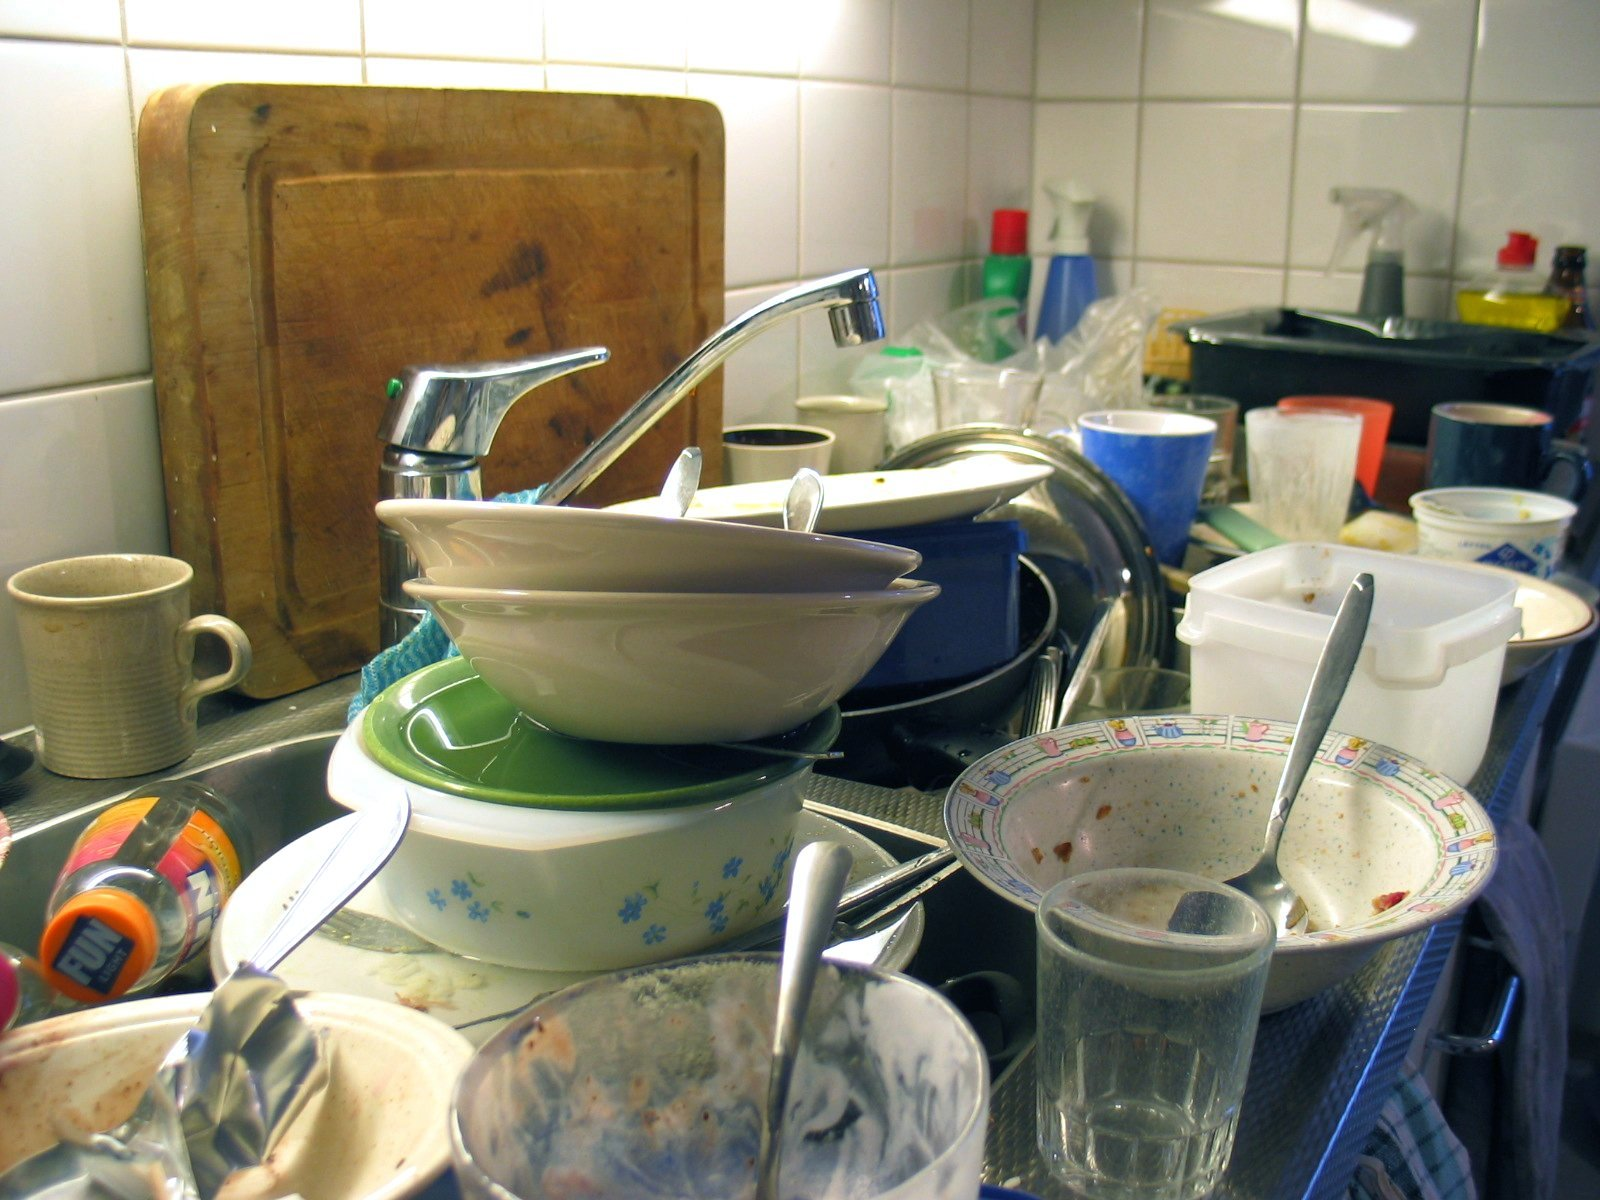 Clip Art Dirty Dishes http://www.realclearscience.com/blog/2011/11/